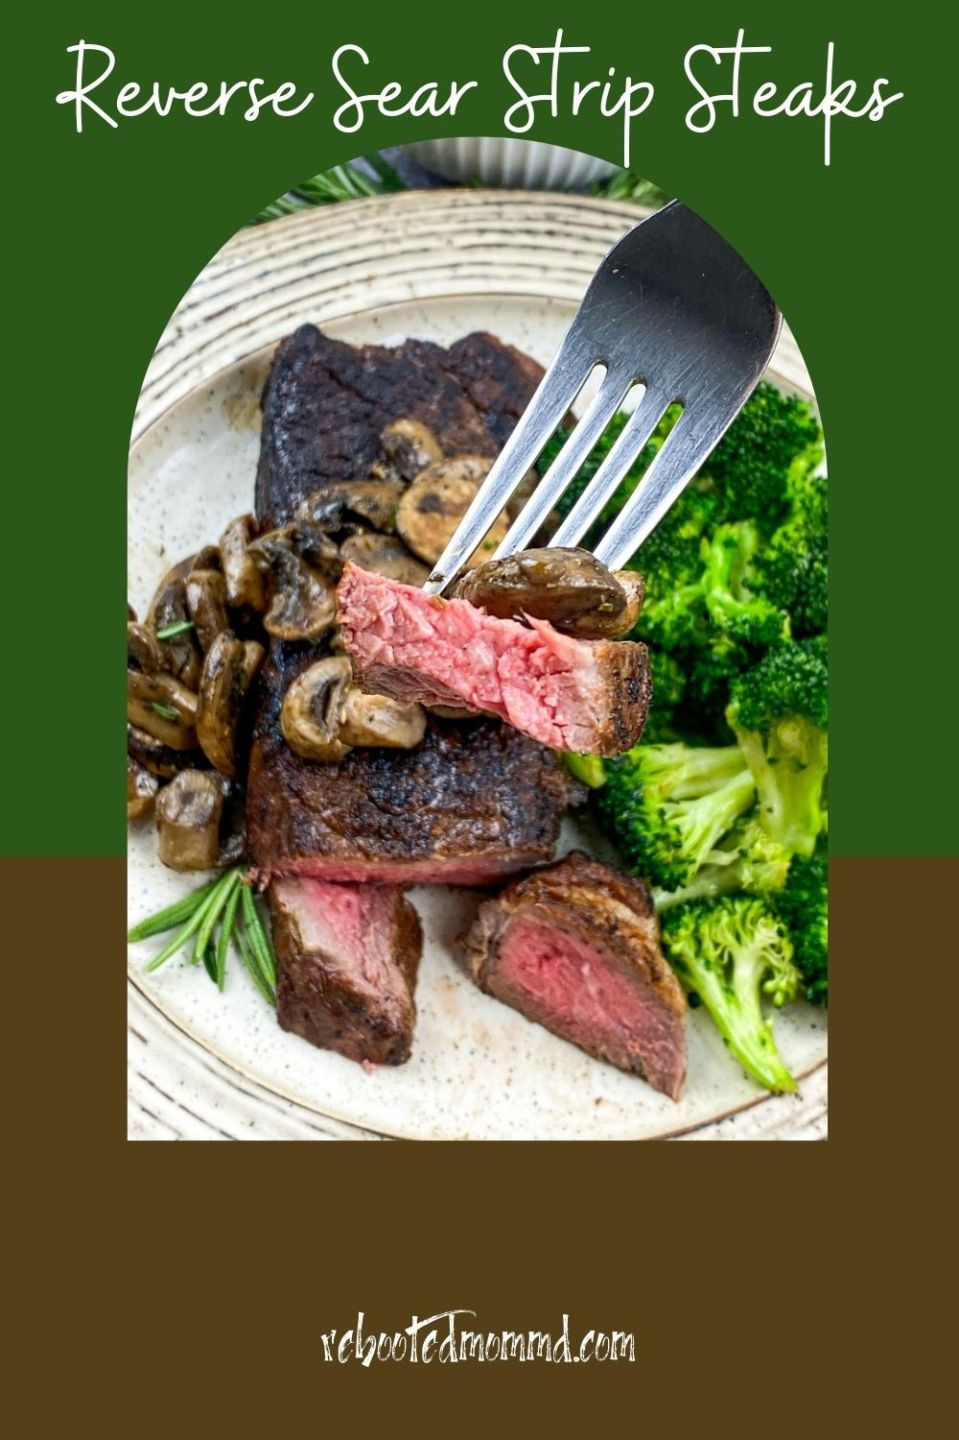 National Meat Month: Reverse Sear Strip Steaks